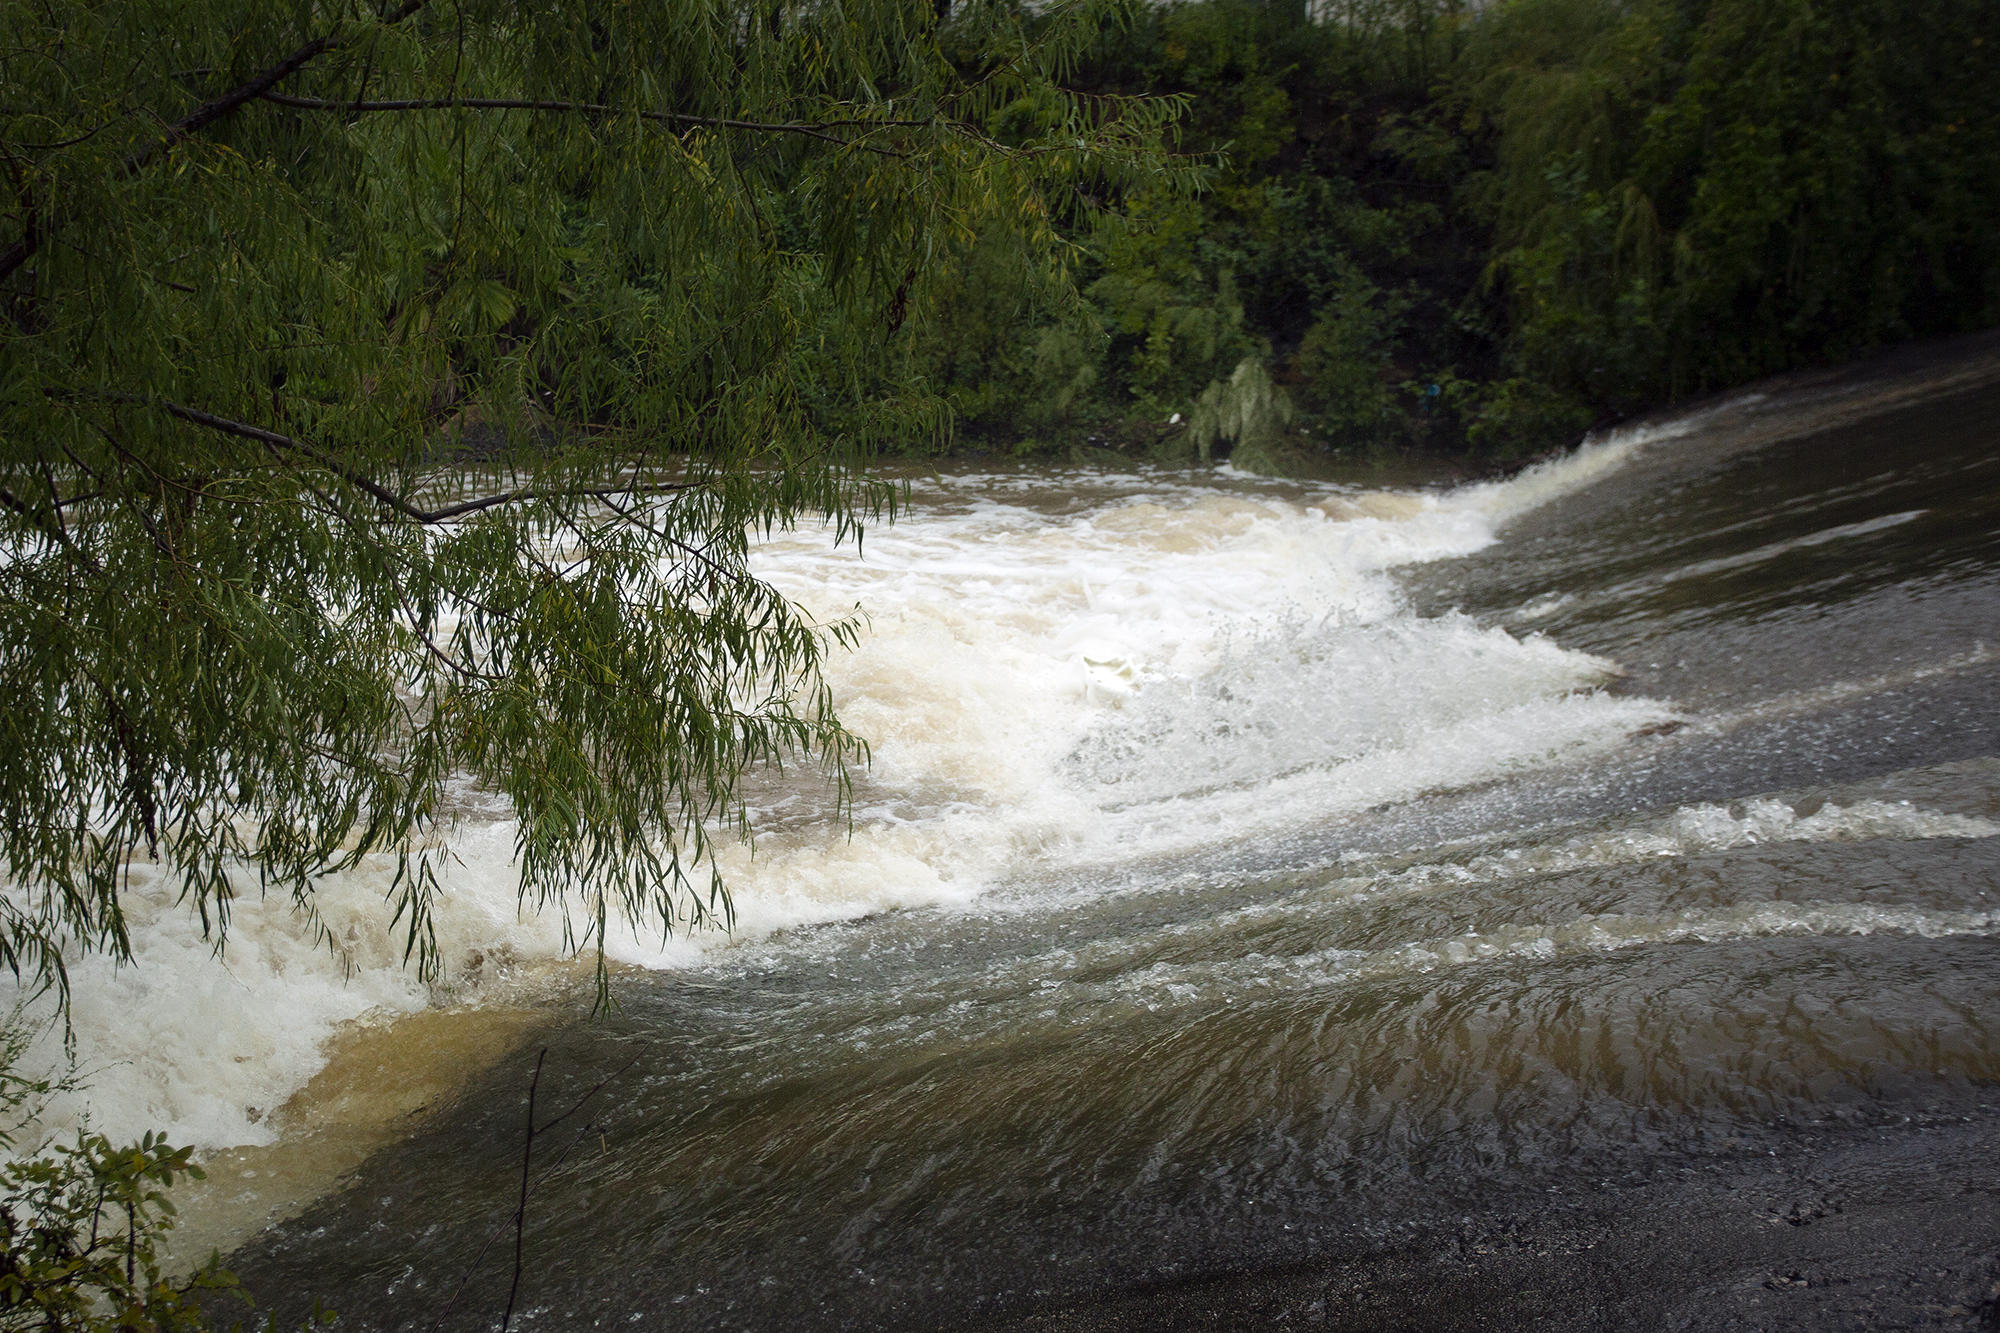 The National Weather Service said the Llano River is expected to rise again Wednesday morning